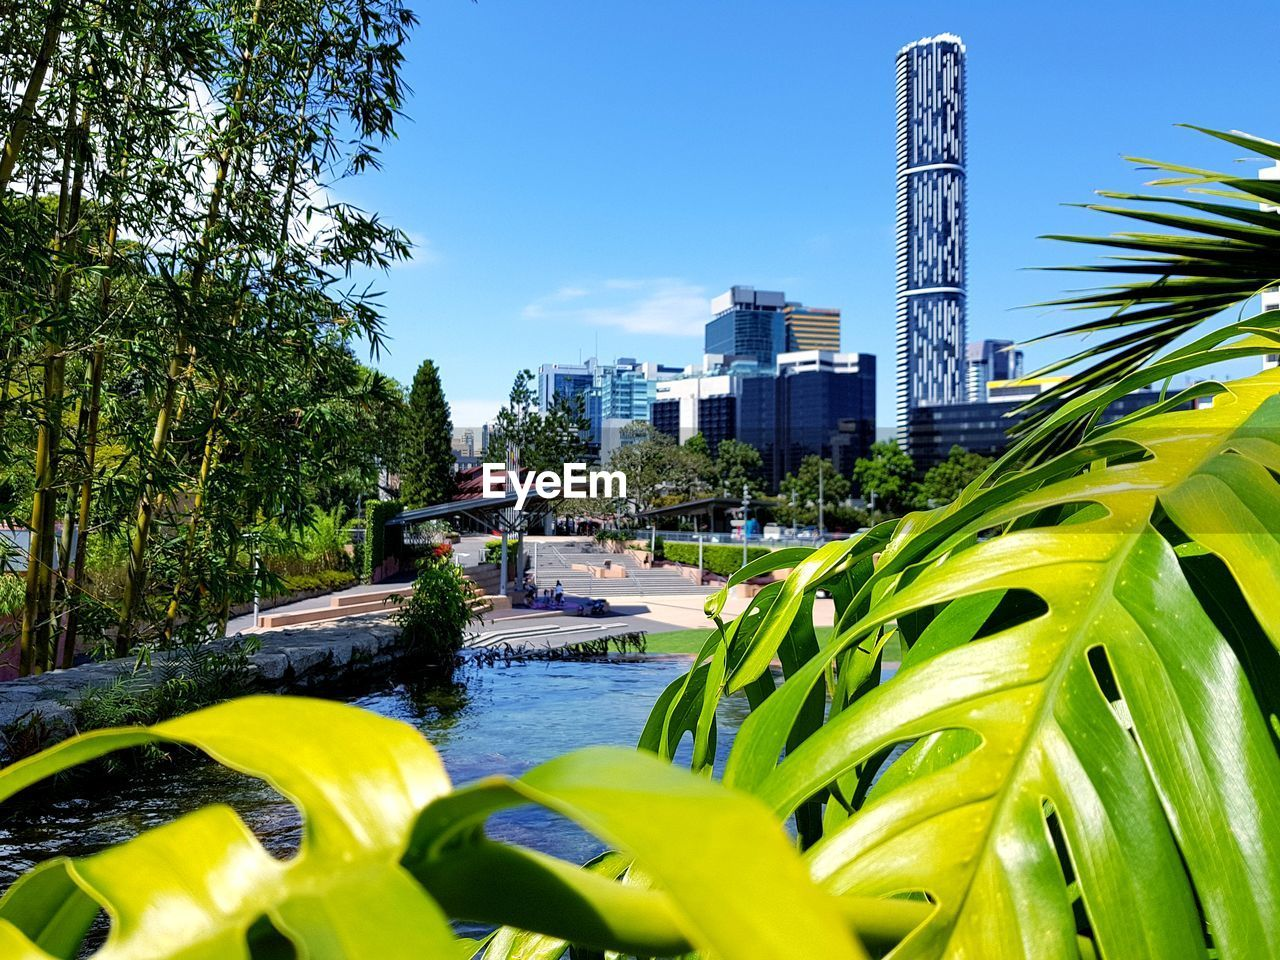 growth, architecture, building exterior, built structure, tree, plant, water, day, outdoors, skyscraper, city life, palm tree, nature, city, modern, clear sky, beauty in nature, no people, sky